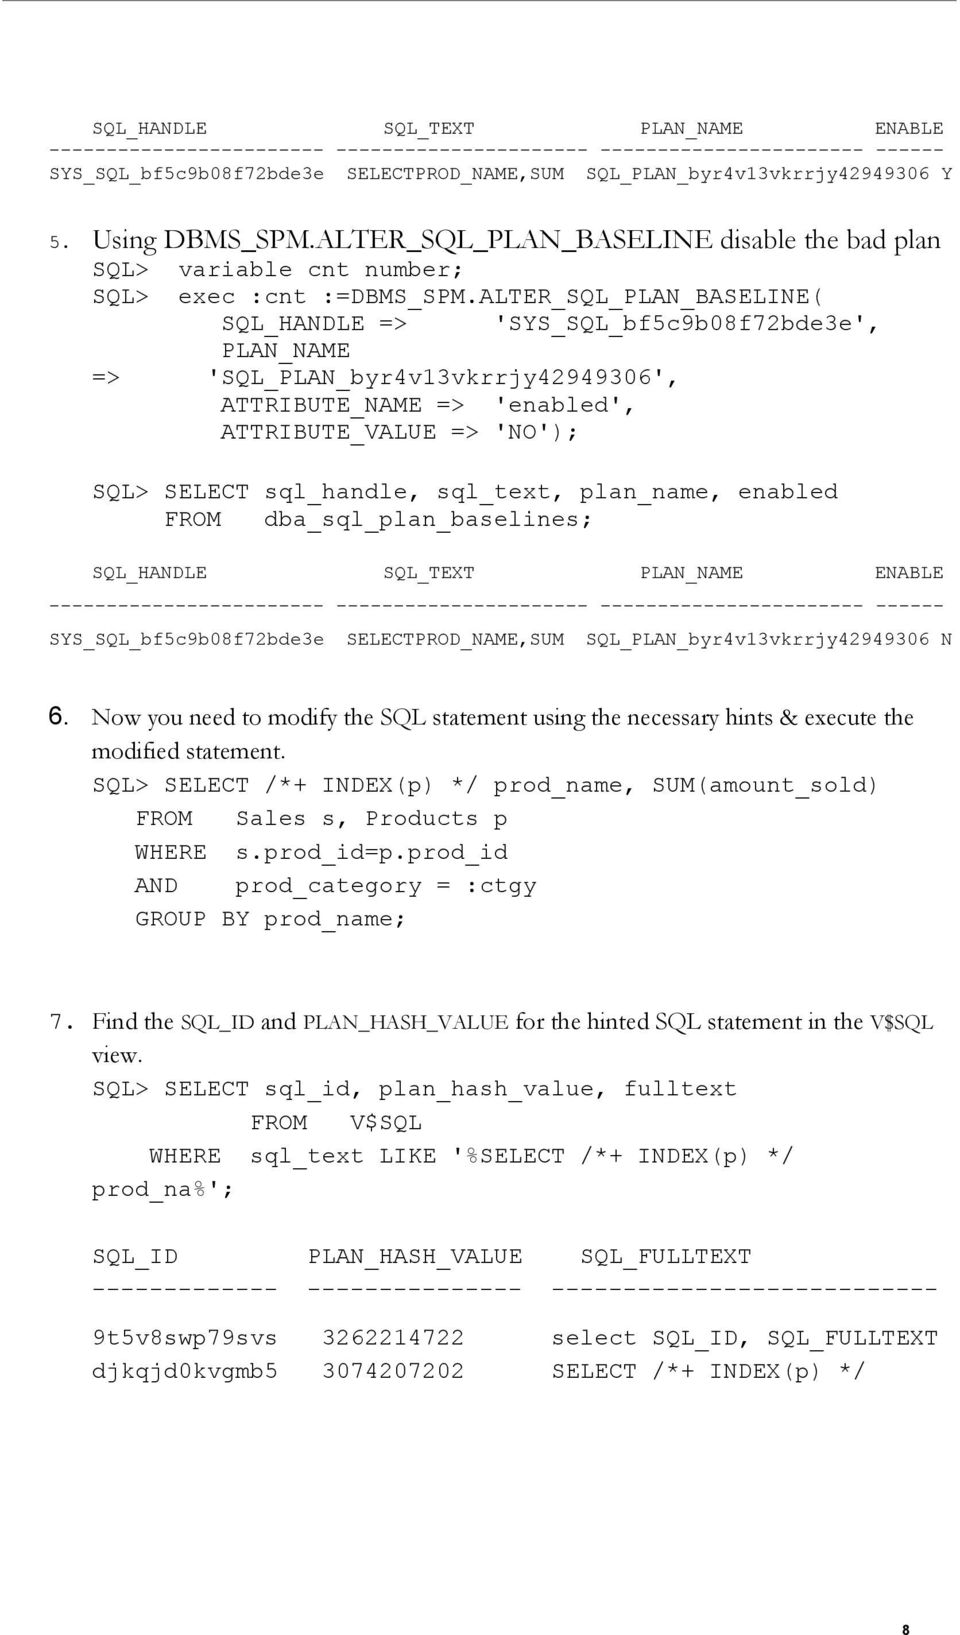 ALTER_SQL_PLAN_BASELINE( SQL_HANDLE => 'SYS_SQL_bf5c9b08f72bde3e', PLAN_NAME => 'SQL_PLAN_byr4v13vkrrjy42949306', ATTRIBUTE_NAME => 'enabled', ATTRIBUTE_VALUE => 'NO'); SQL> SELECT sql_handle,